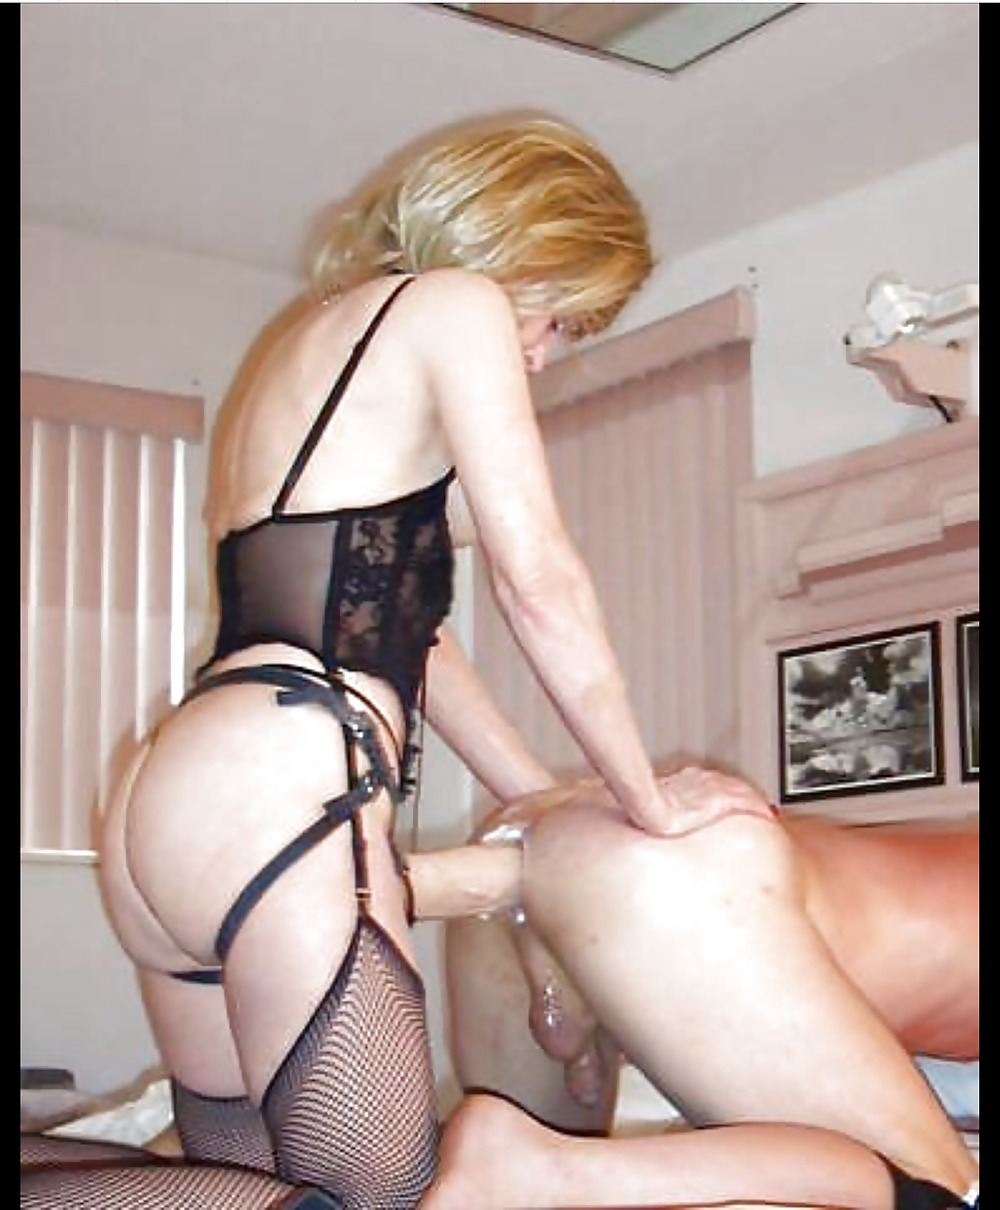 Bukkake powered wife fucks husband strap on naked sexy photos